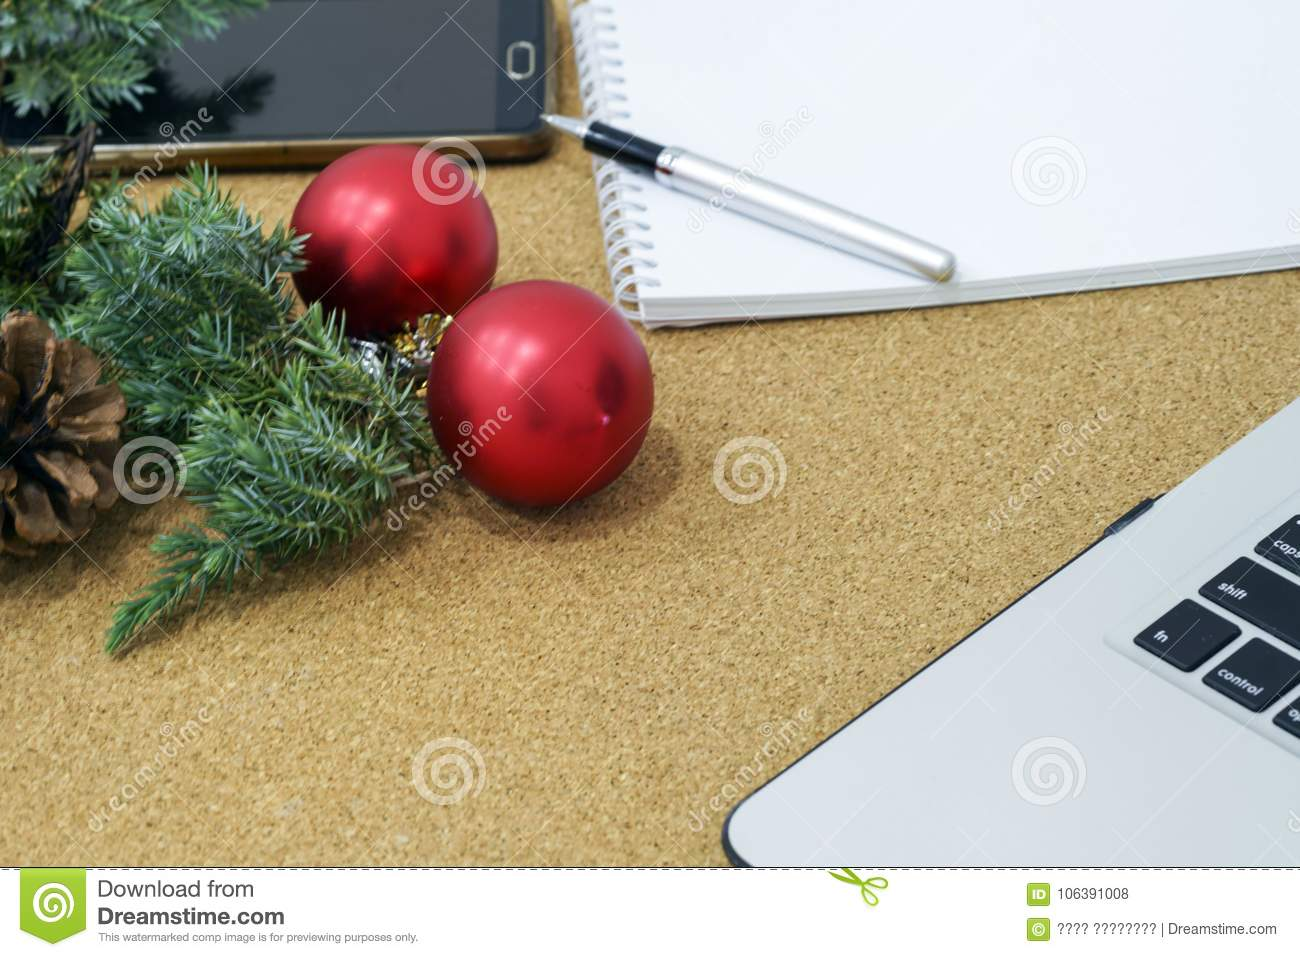 download not completed list of goals in a notebook on a wooden table with christmas decorations - Christmas Decorations List